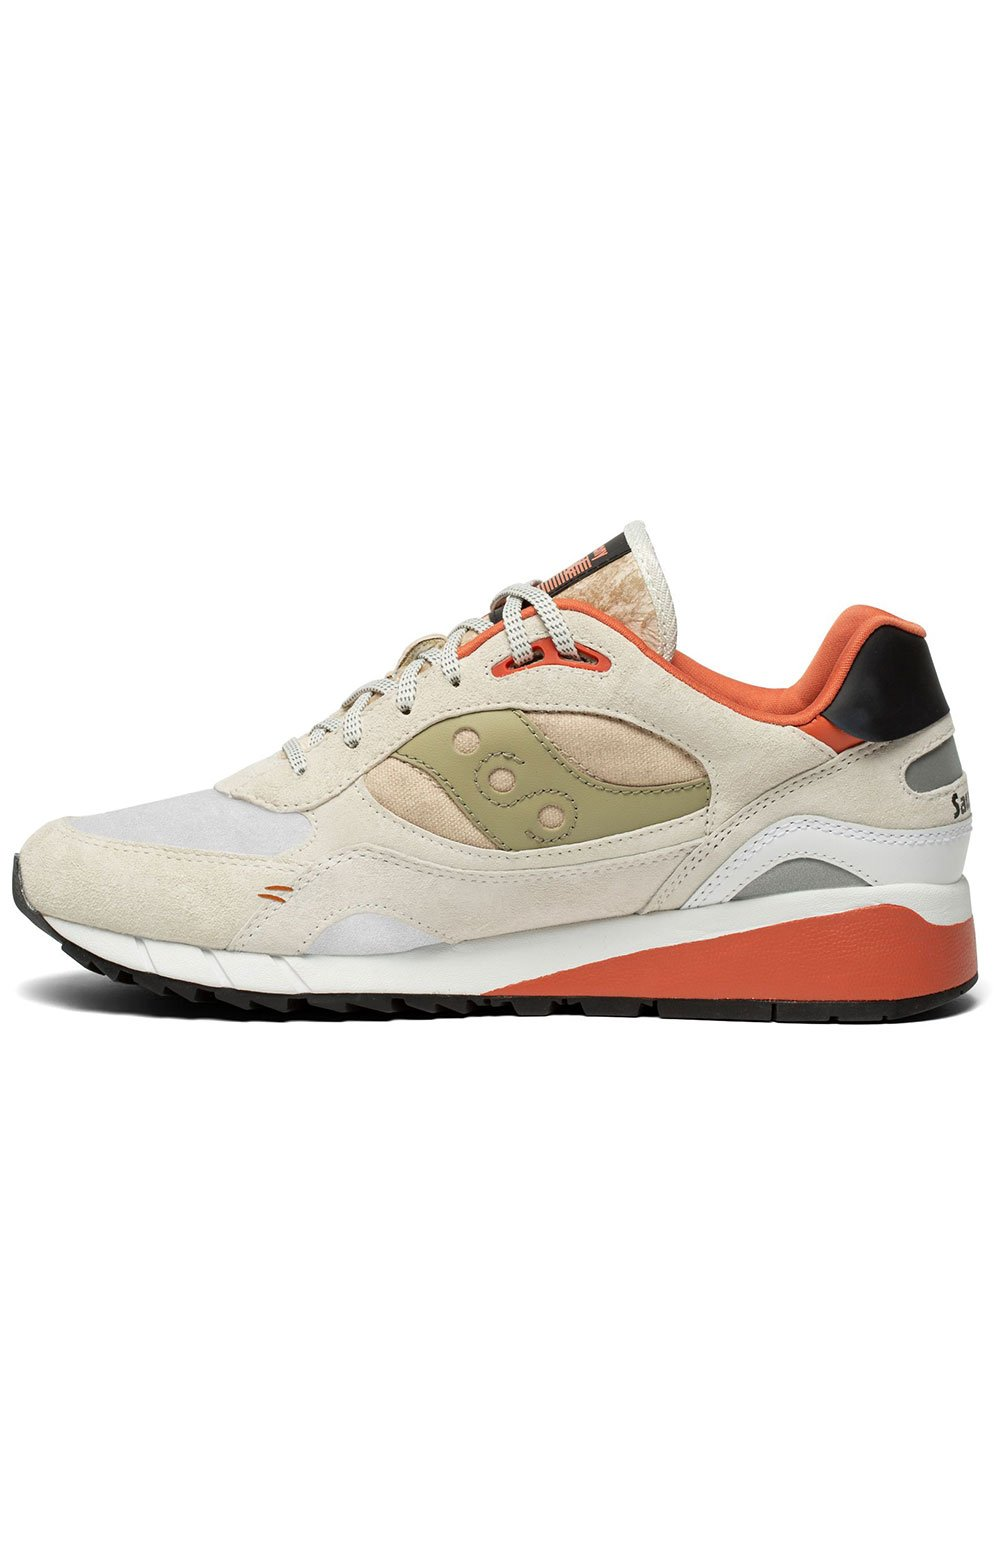 (S70587-3) Shadow 6000 Shoes - White/Clay 2